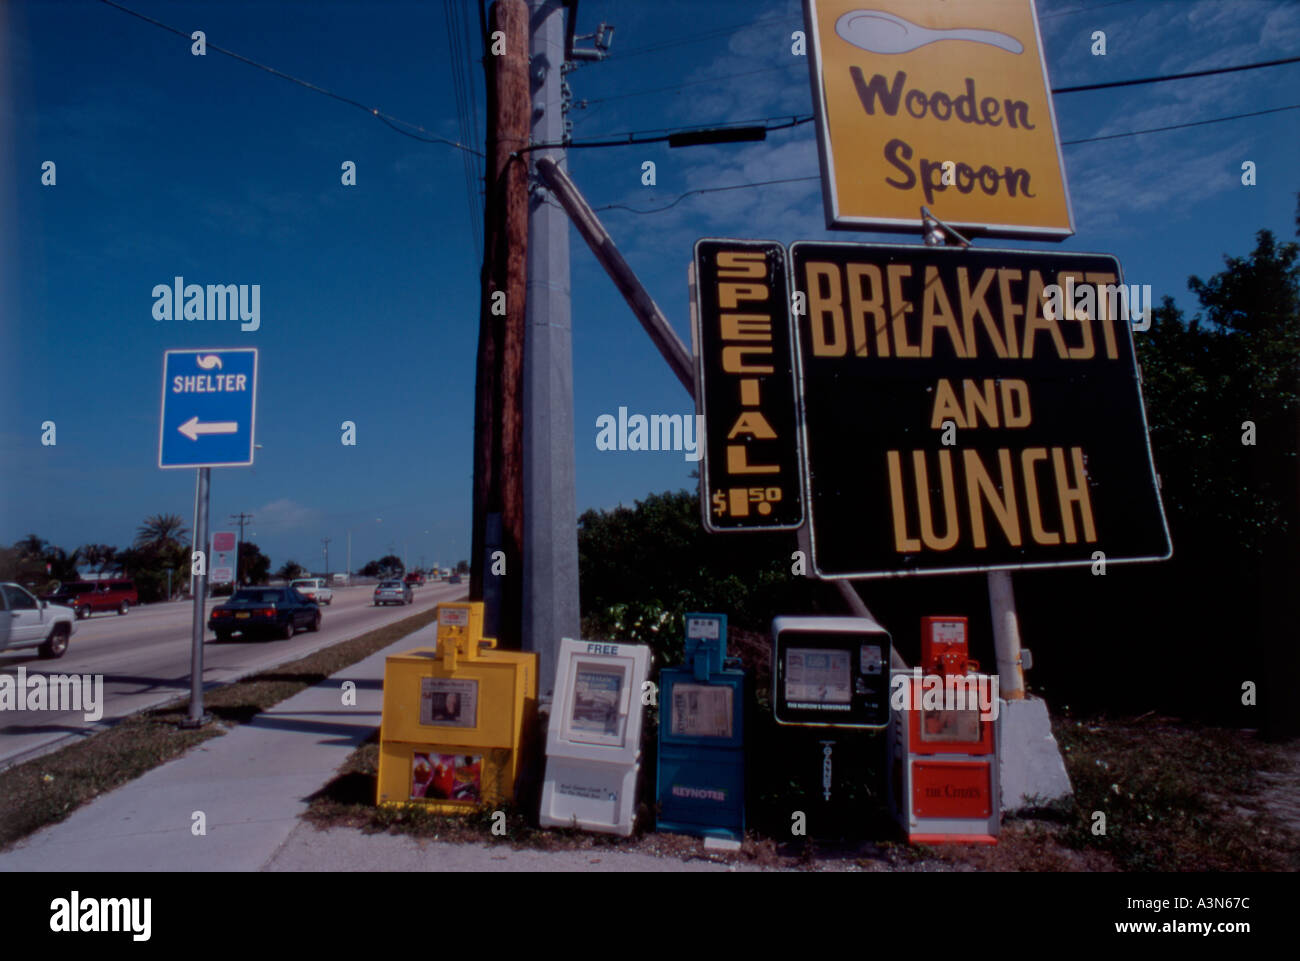 Wooden Spoon Diner Florida Keys Stock Photos Wooden Spoon Diner